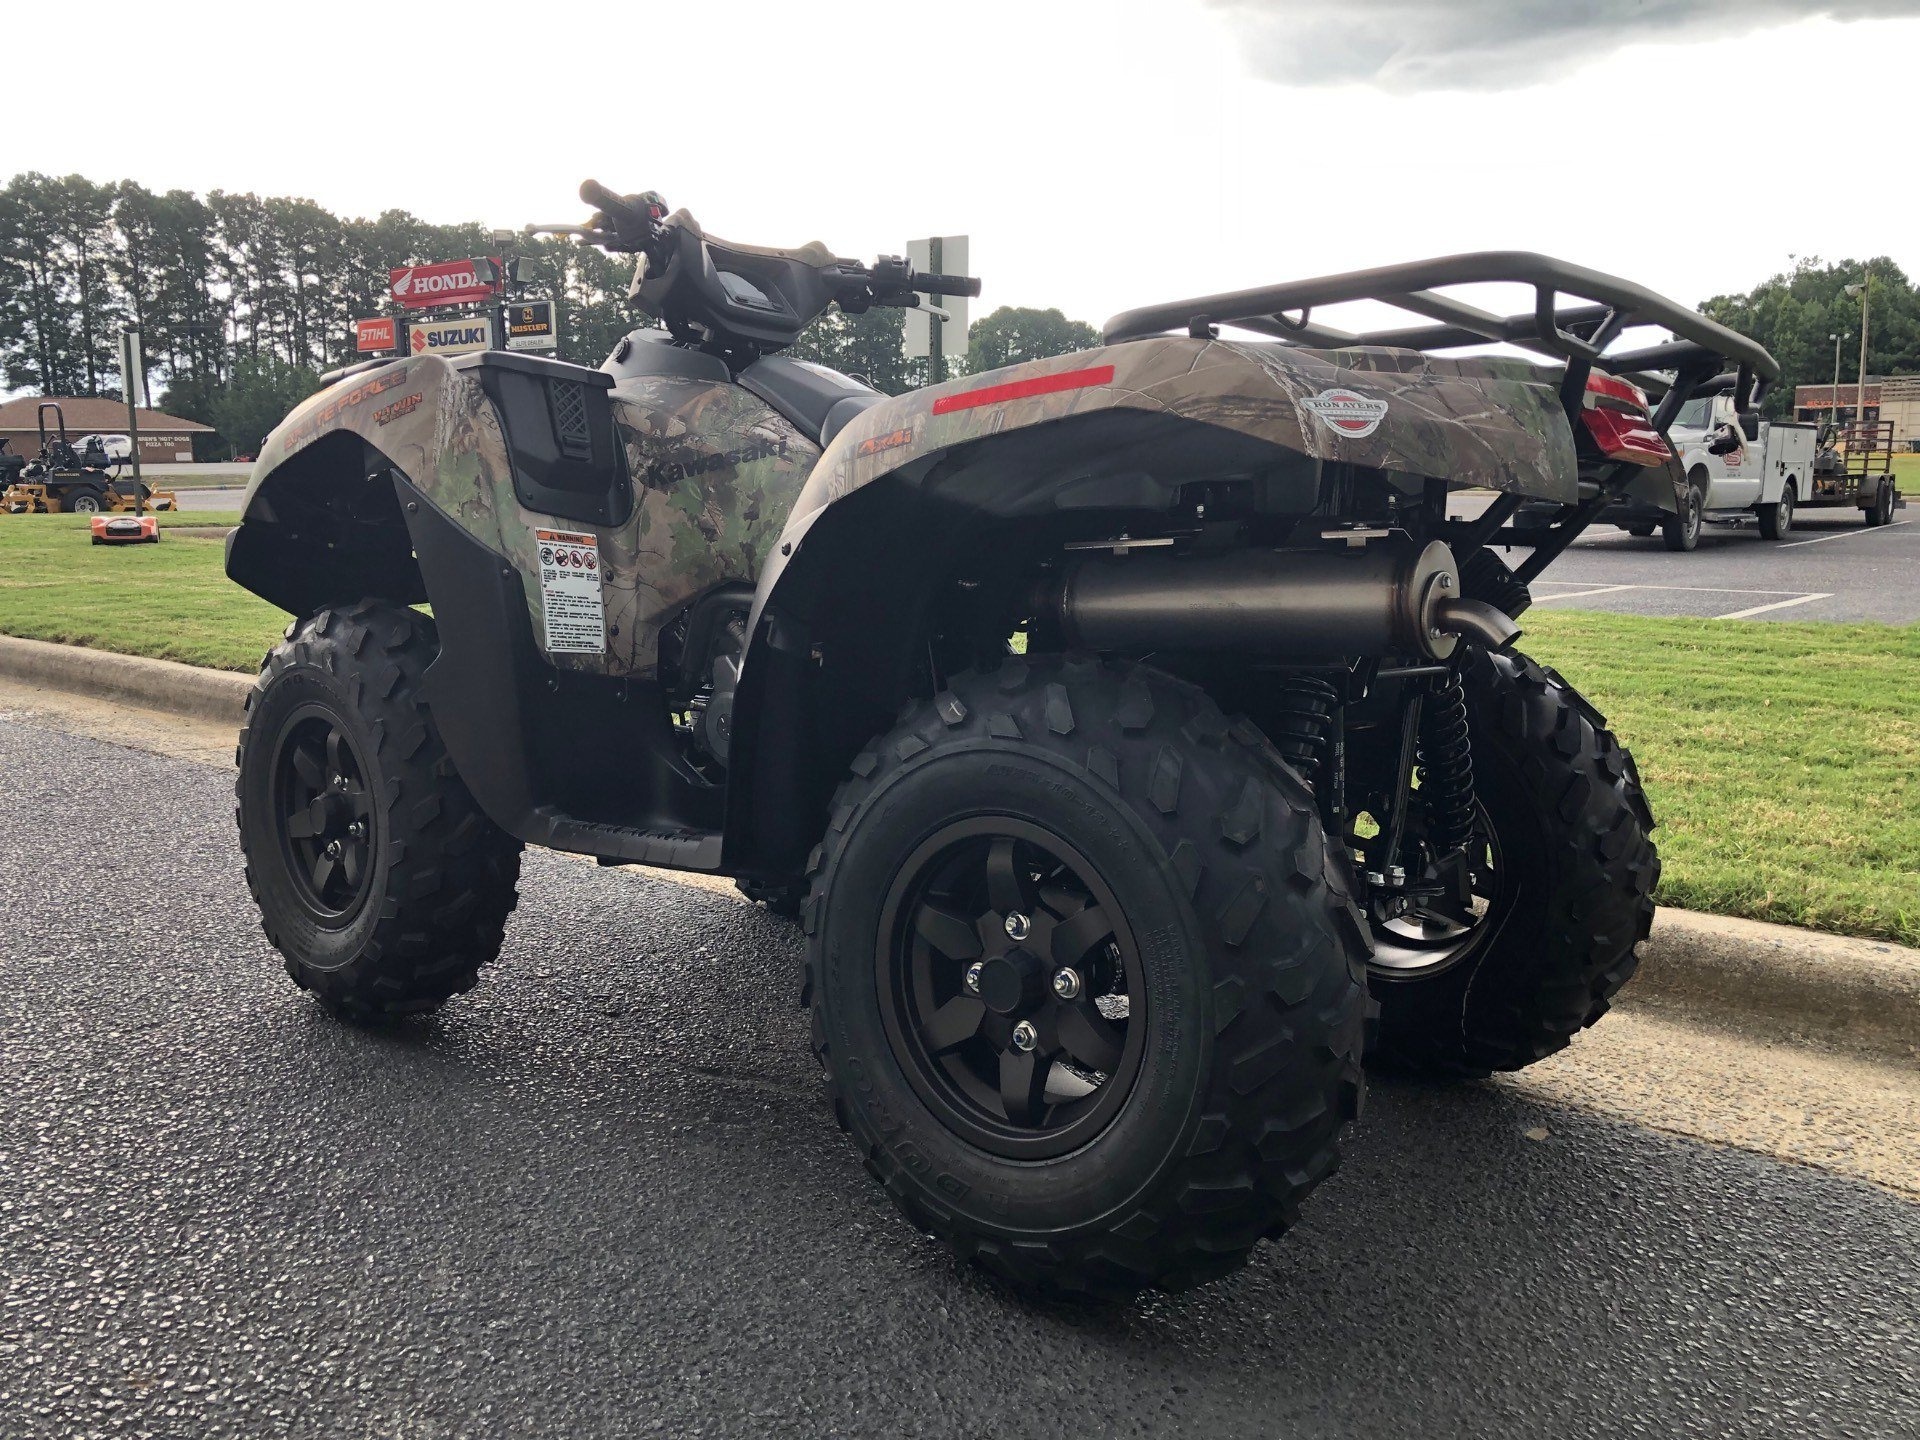 2020 Kawasaki Brute Force 750 4x4i EPS Camo in Greenville, North Carolina - Photo 8